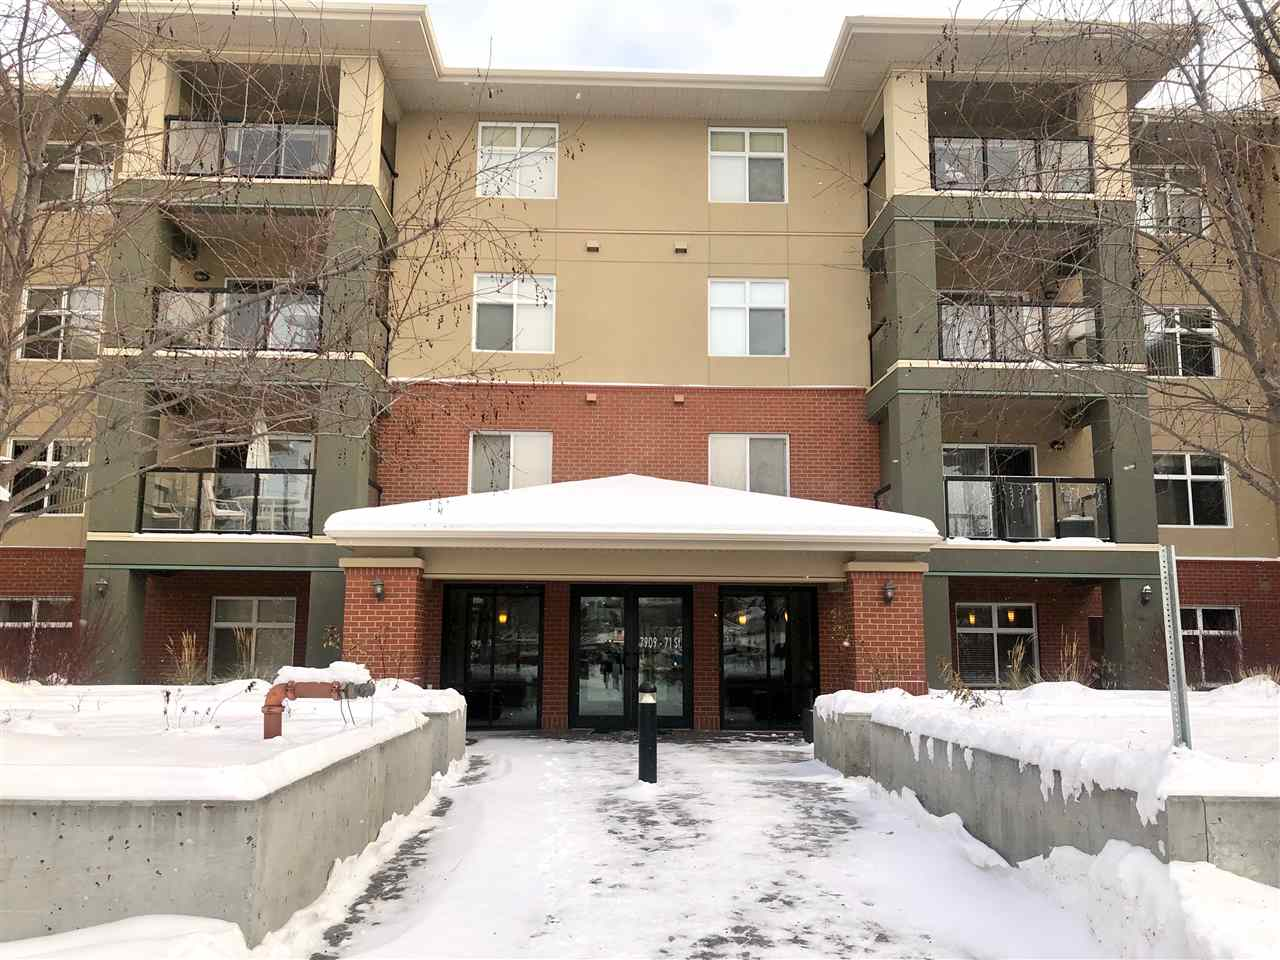 Welcome to this Cozy 1 Bedroom condo situated in the Great Convenient Location in the Community of King Edward Park! Features Open Concept Style Living Room with Patio doors to Large Balcony where you can enjoy BBQ in the Summer. Spacious Kitchen with Lots of Cabinets. Raise Island that you can sit with Bar Stools and function as Breakfast Nook adjacent to Dining area. Master Bedroom offers Large & Bright Window, Closet with Mirror Sliding Doors.  4pc Full Bathroom & In-suite Laundry room with space for Storage. One Heated Underground Titled Parking Stall. This Complex has the Best amenities with Huge Social room that equipped with Pool Table, Lounge, Kitchen & Patio, Massive Fitness Cenre, Indoor Swimming Pool, Hot Tub, Steam Room. Easy access to U of A, Downtown, Sherwood Park Freeway, Superb location just off Whyte Ave, Restaurant, Shopping Centre.....Quick Possession Available.